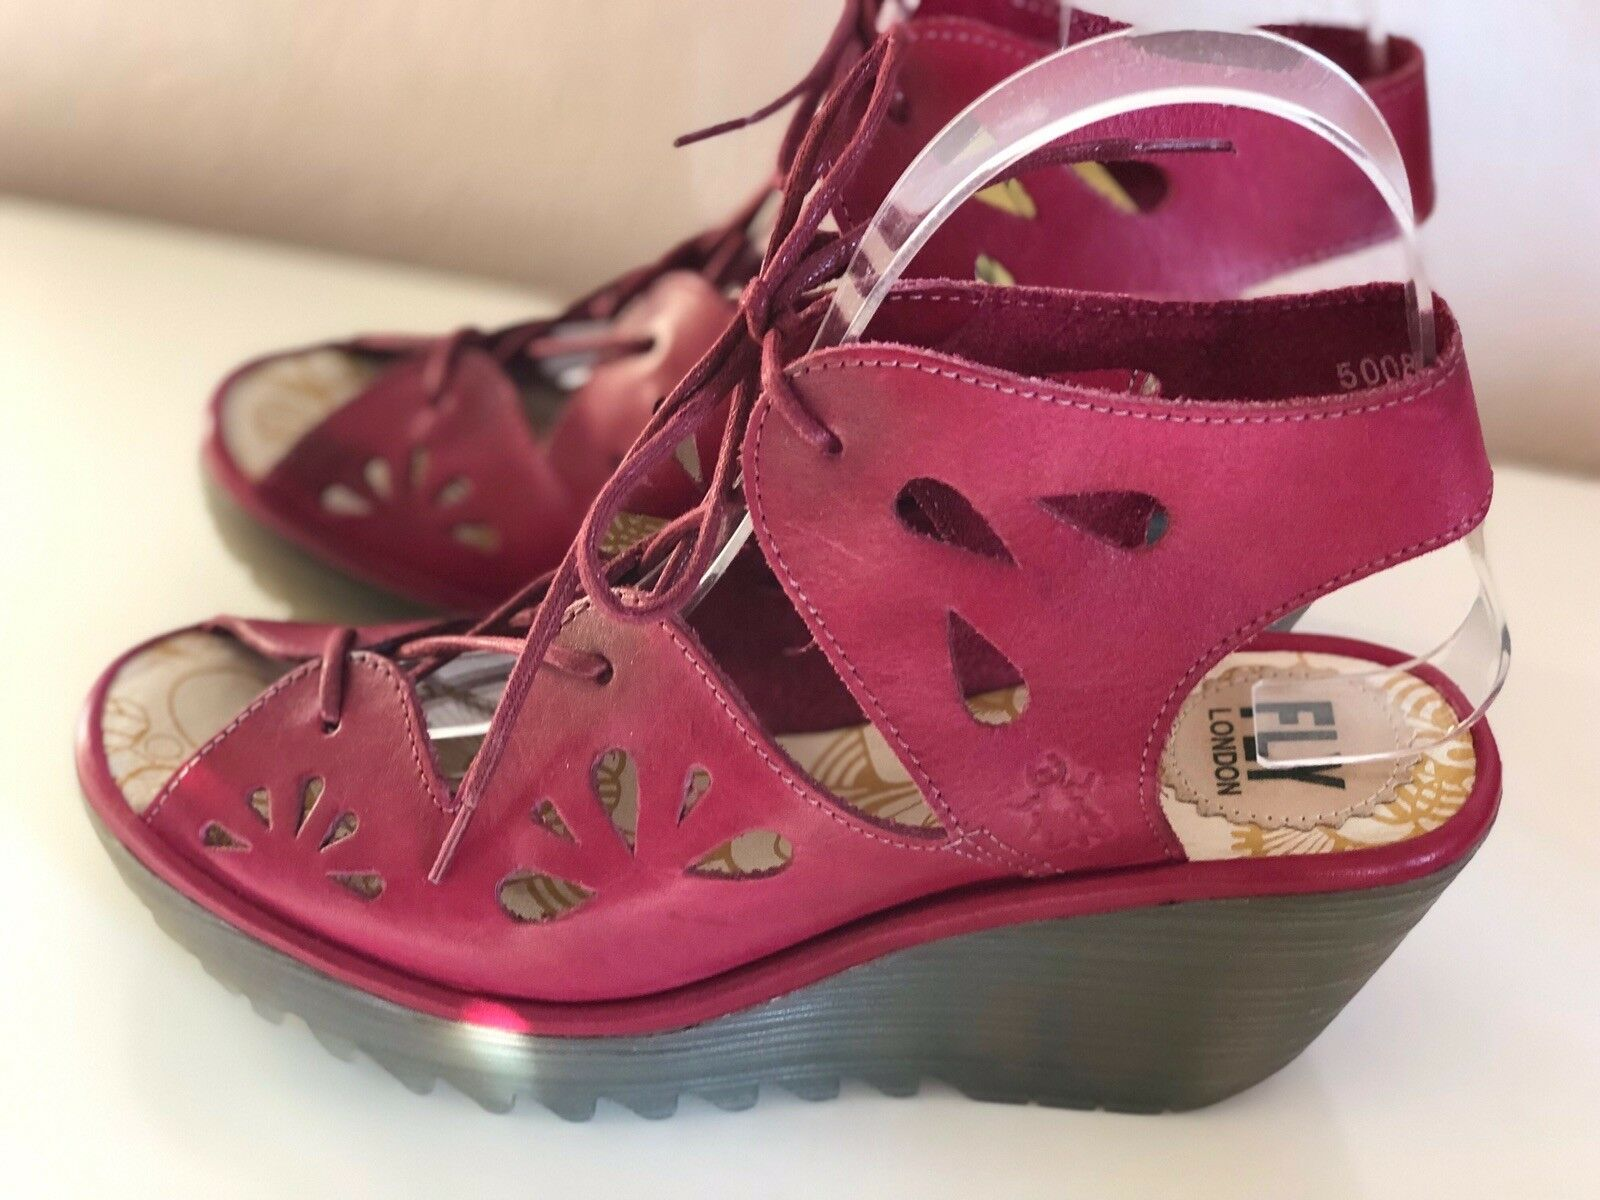 FLY LONDON YOTE WOMENS SANDAL UK SIZE 5 WEDGE, RED, OPEN TOE, BNWTS & BOX